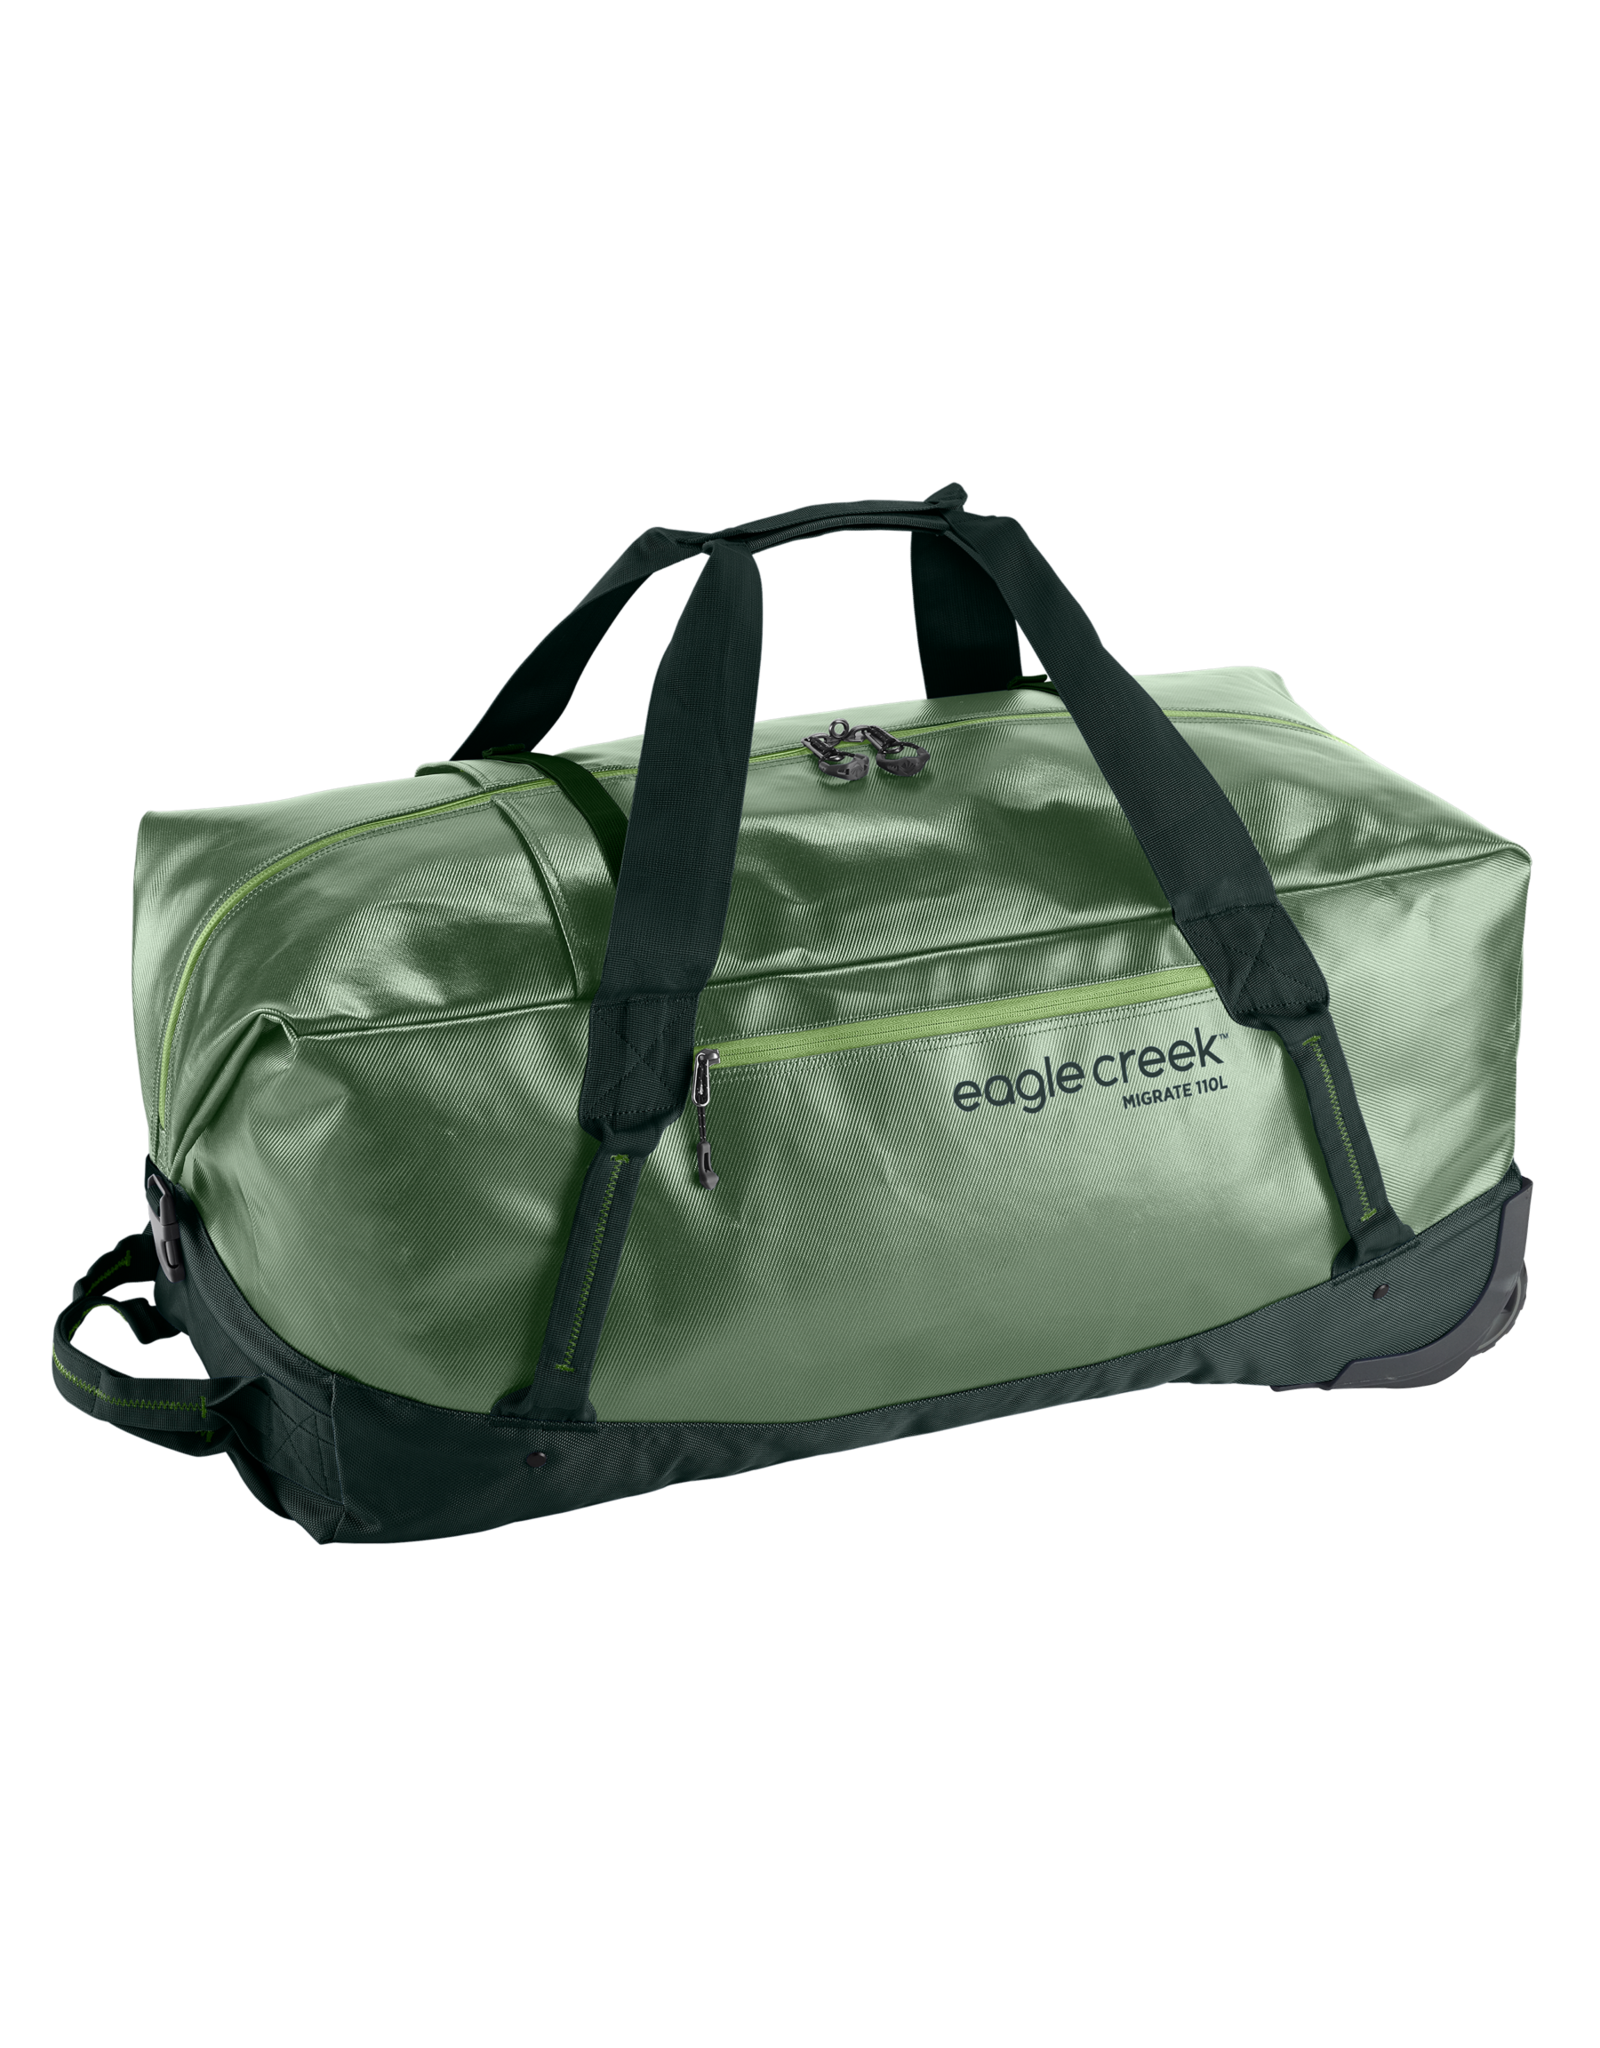 Eagle Creek Migrate Wheeled Duffel 110L